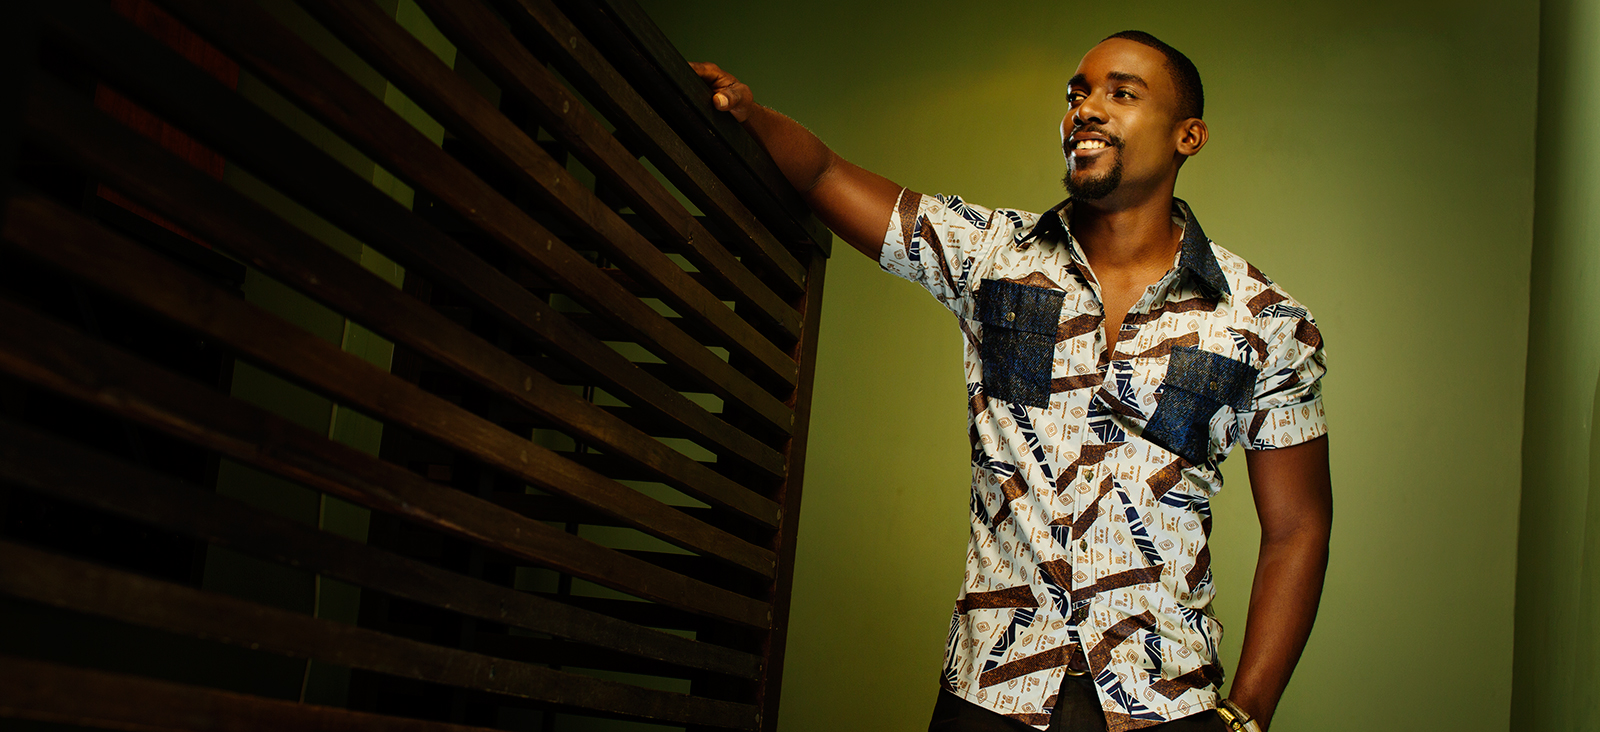 Shirt design in nigeria - How Every Man Can Add Print To Everyday Style